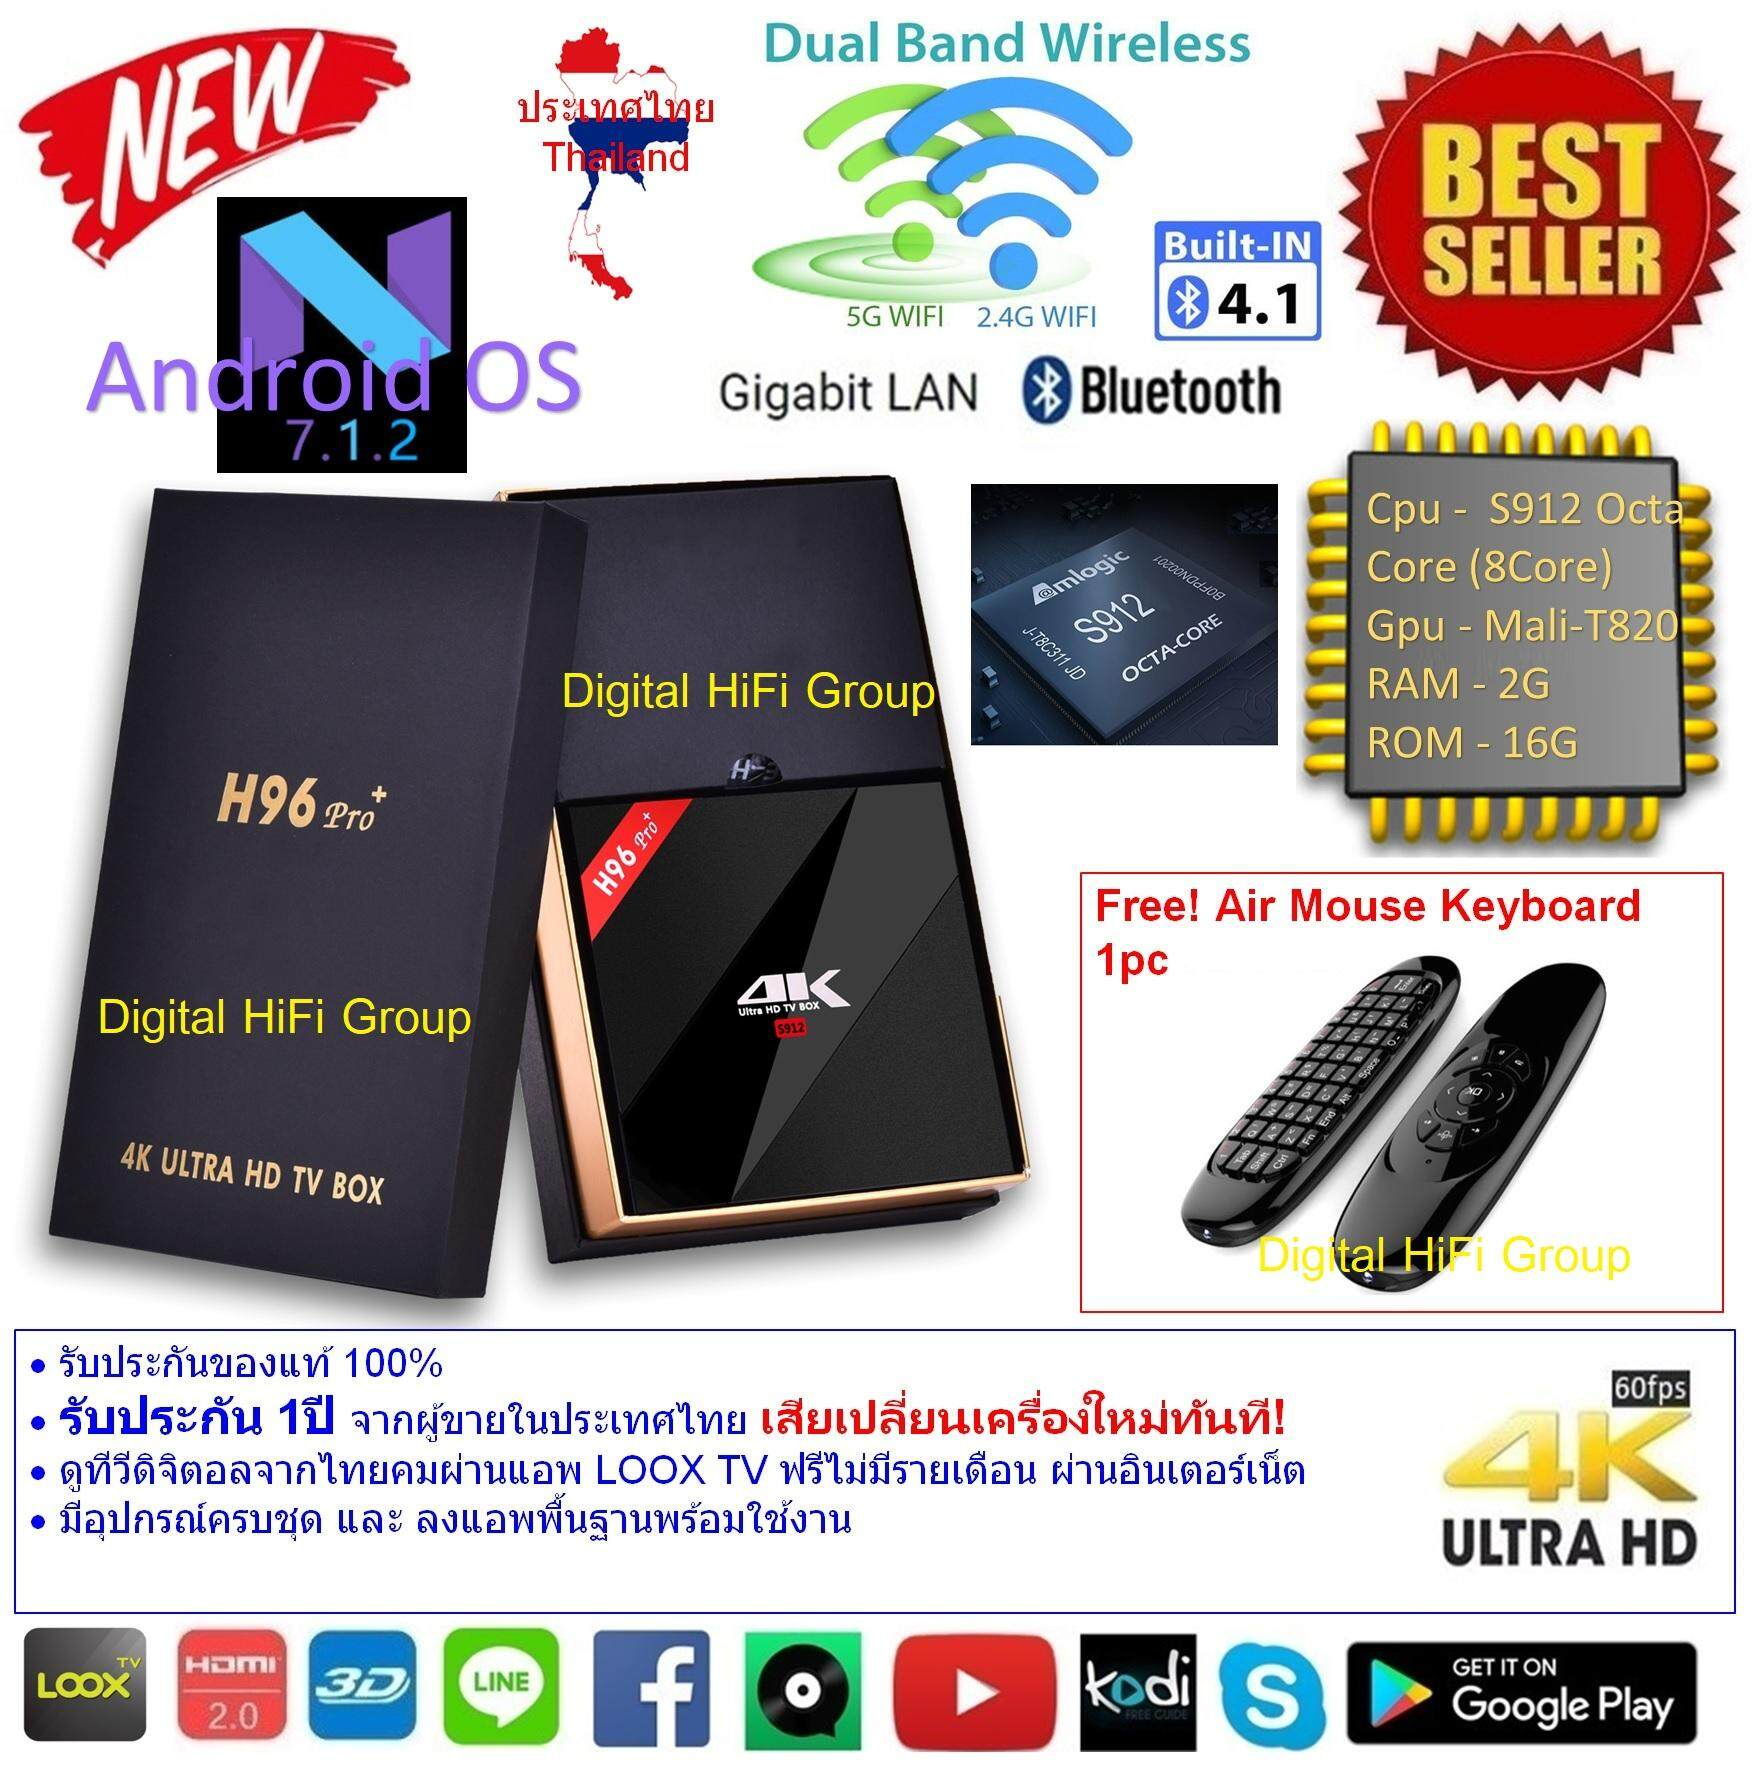 ยี่ห้อนี้ดีไหม  ยโสธร Android Smart TV Box H96 Pro+ Plus Octa Core Cpu S912 RAM 2G ROM 16G UHD 4K Android Nougat 7.1.2 Free Air Mouse Keyboard